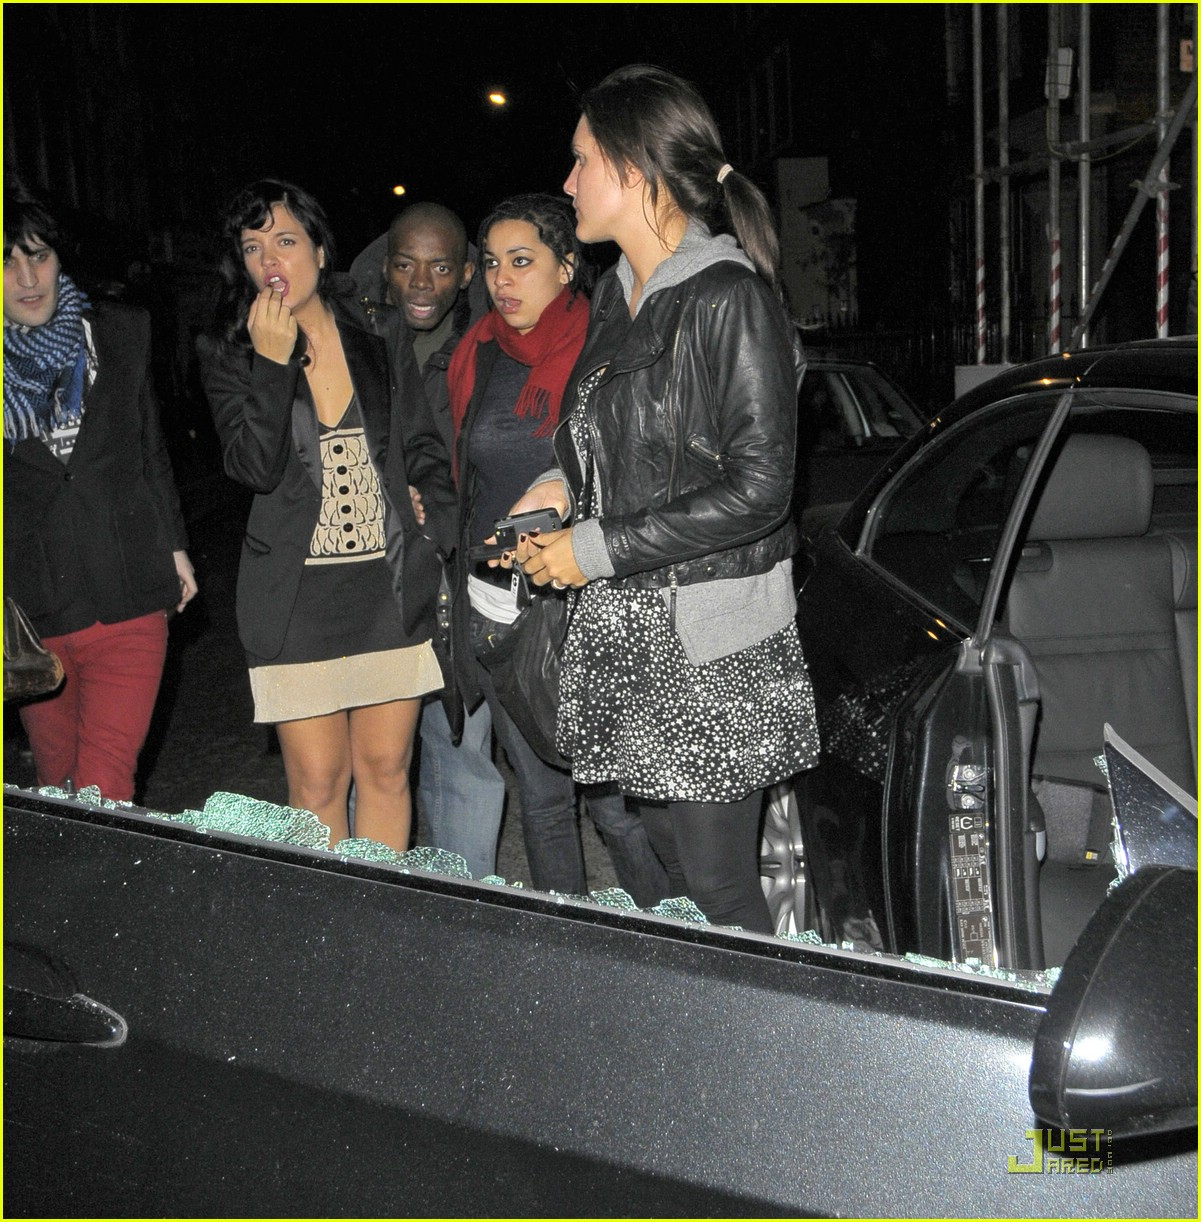 paparazzi break lily allen car window 02973171